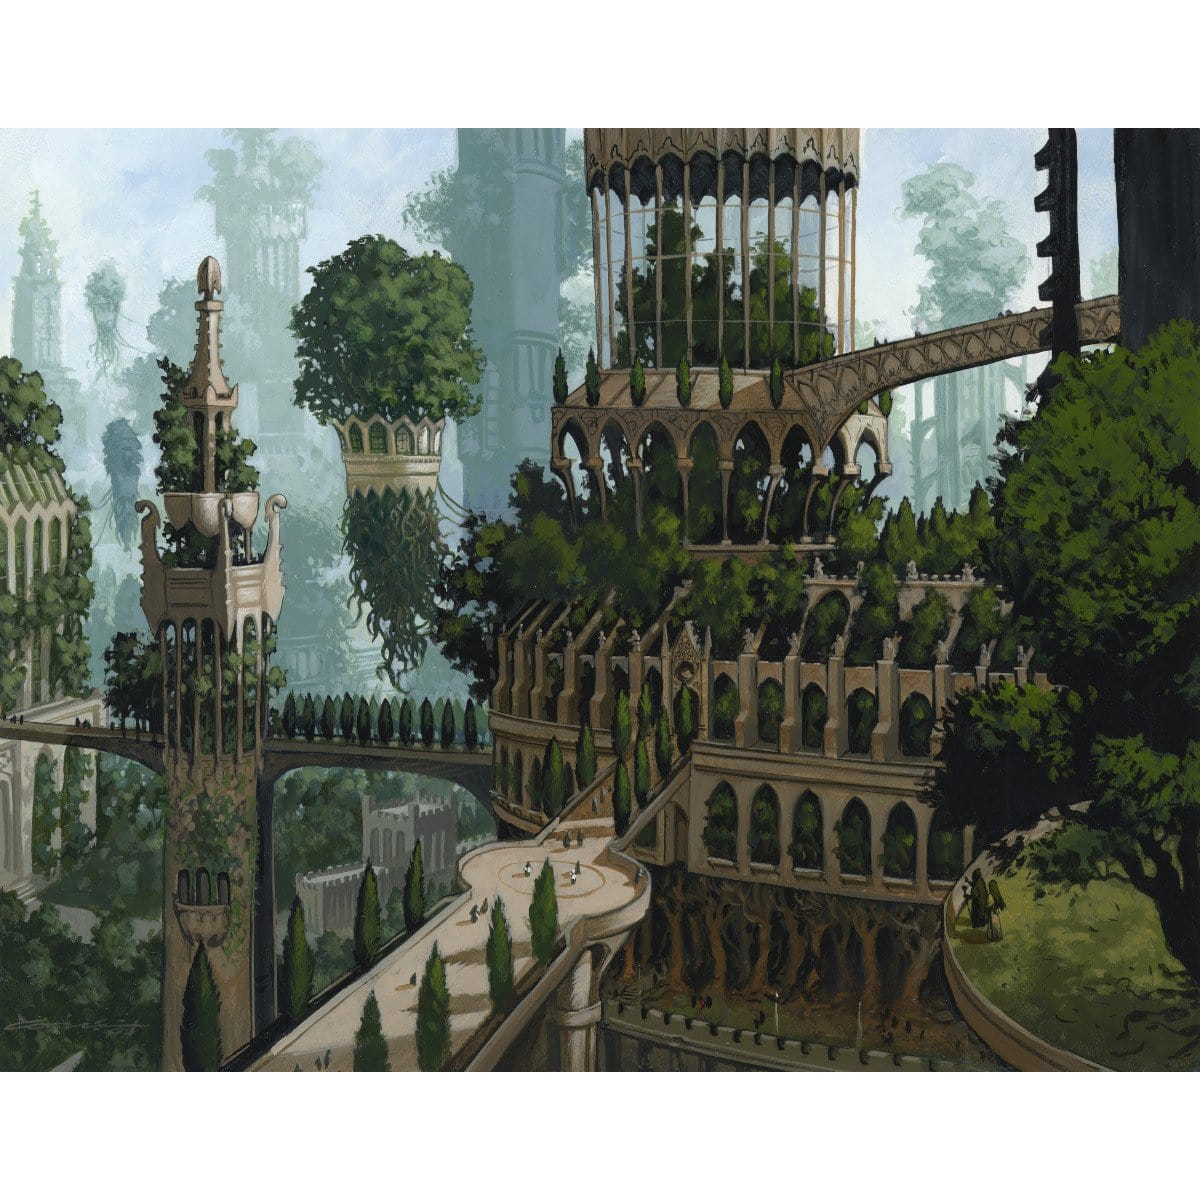 Forest (Ravnica) Print - Print - Original Magic Art - Accessories for Magic the Gathering and other card games